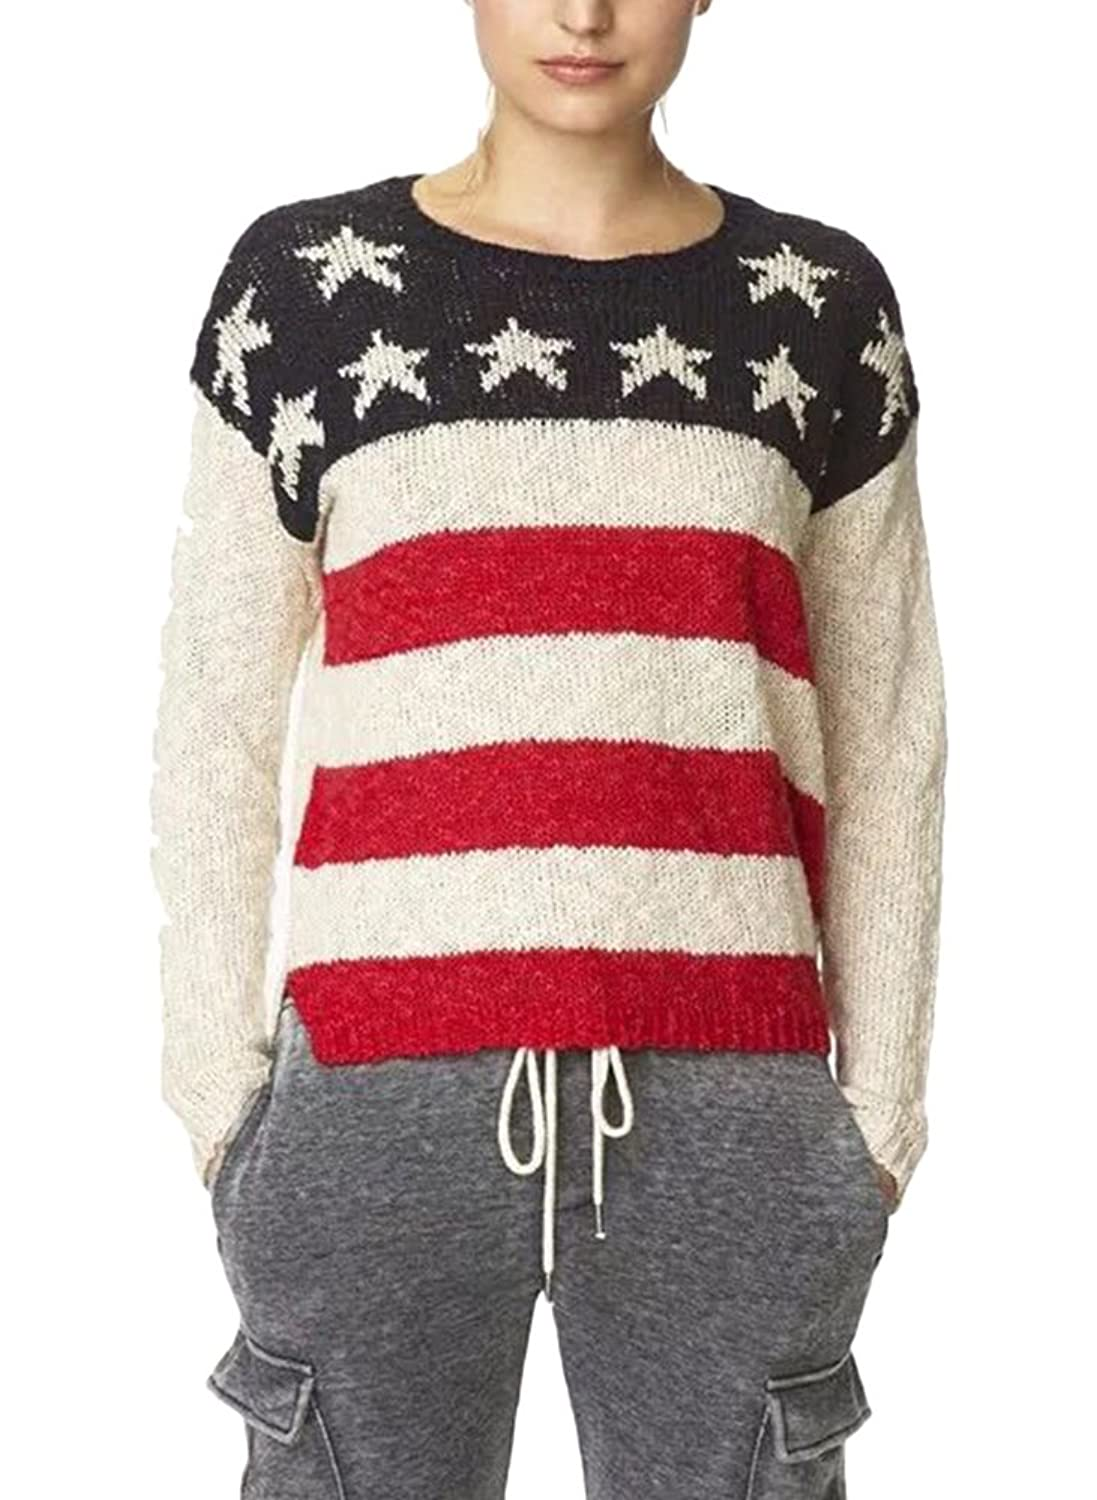 Women's Casual Crewneck American Flag Pattern Knitted Sweater Jumper top